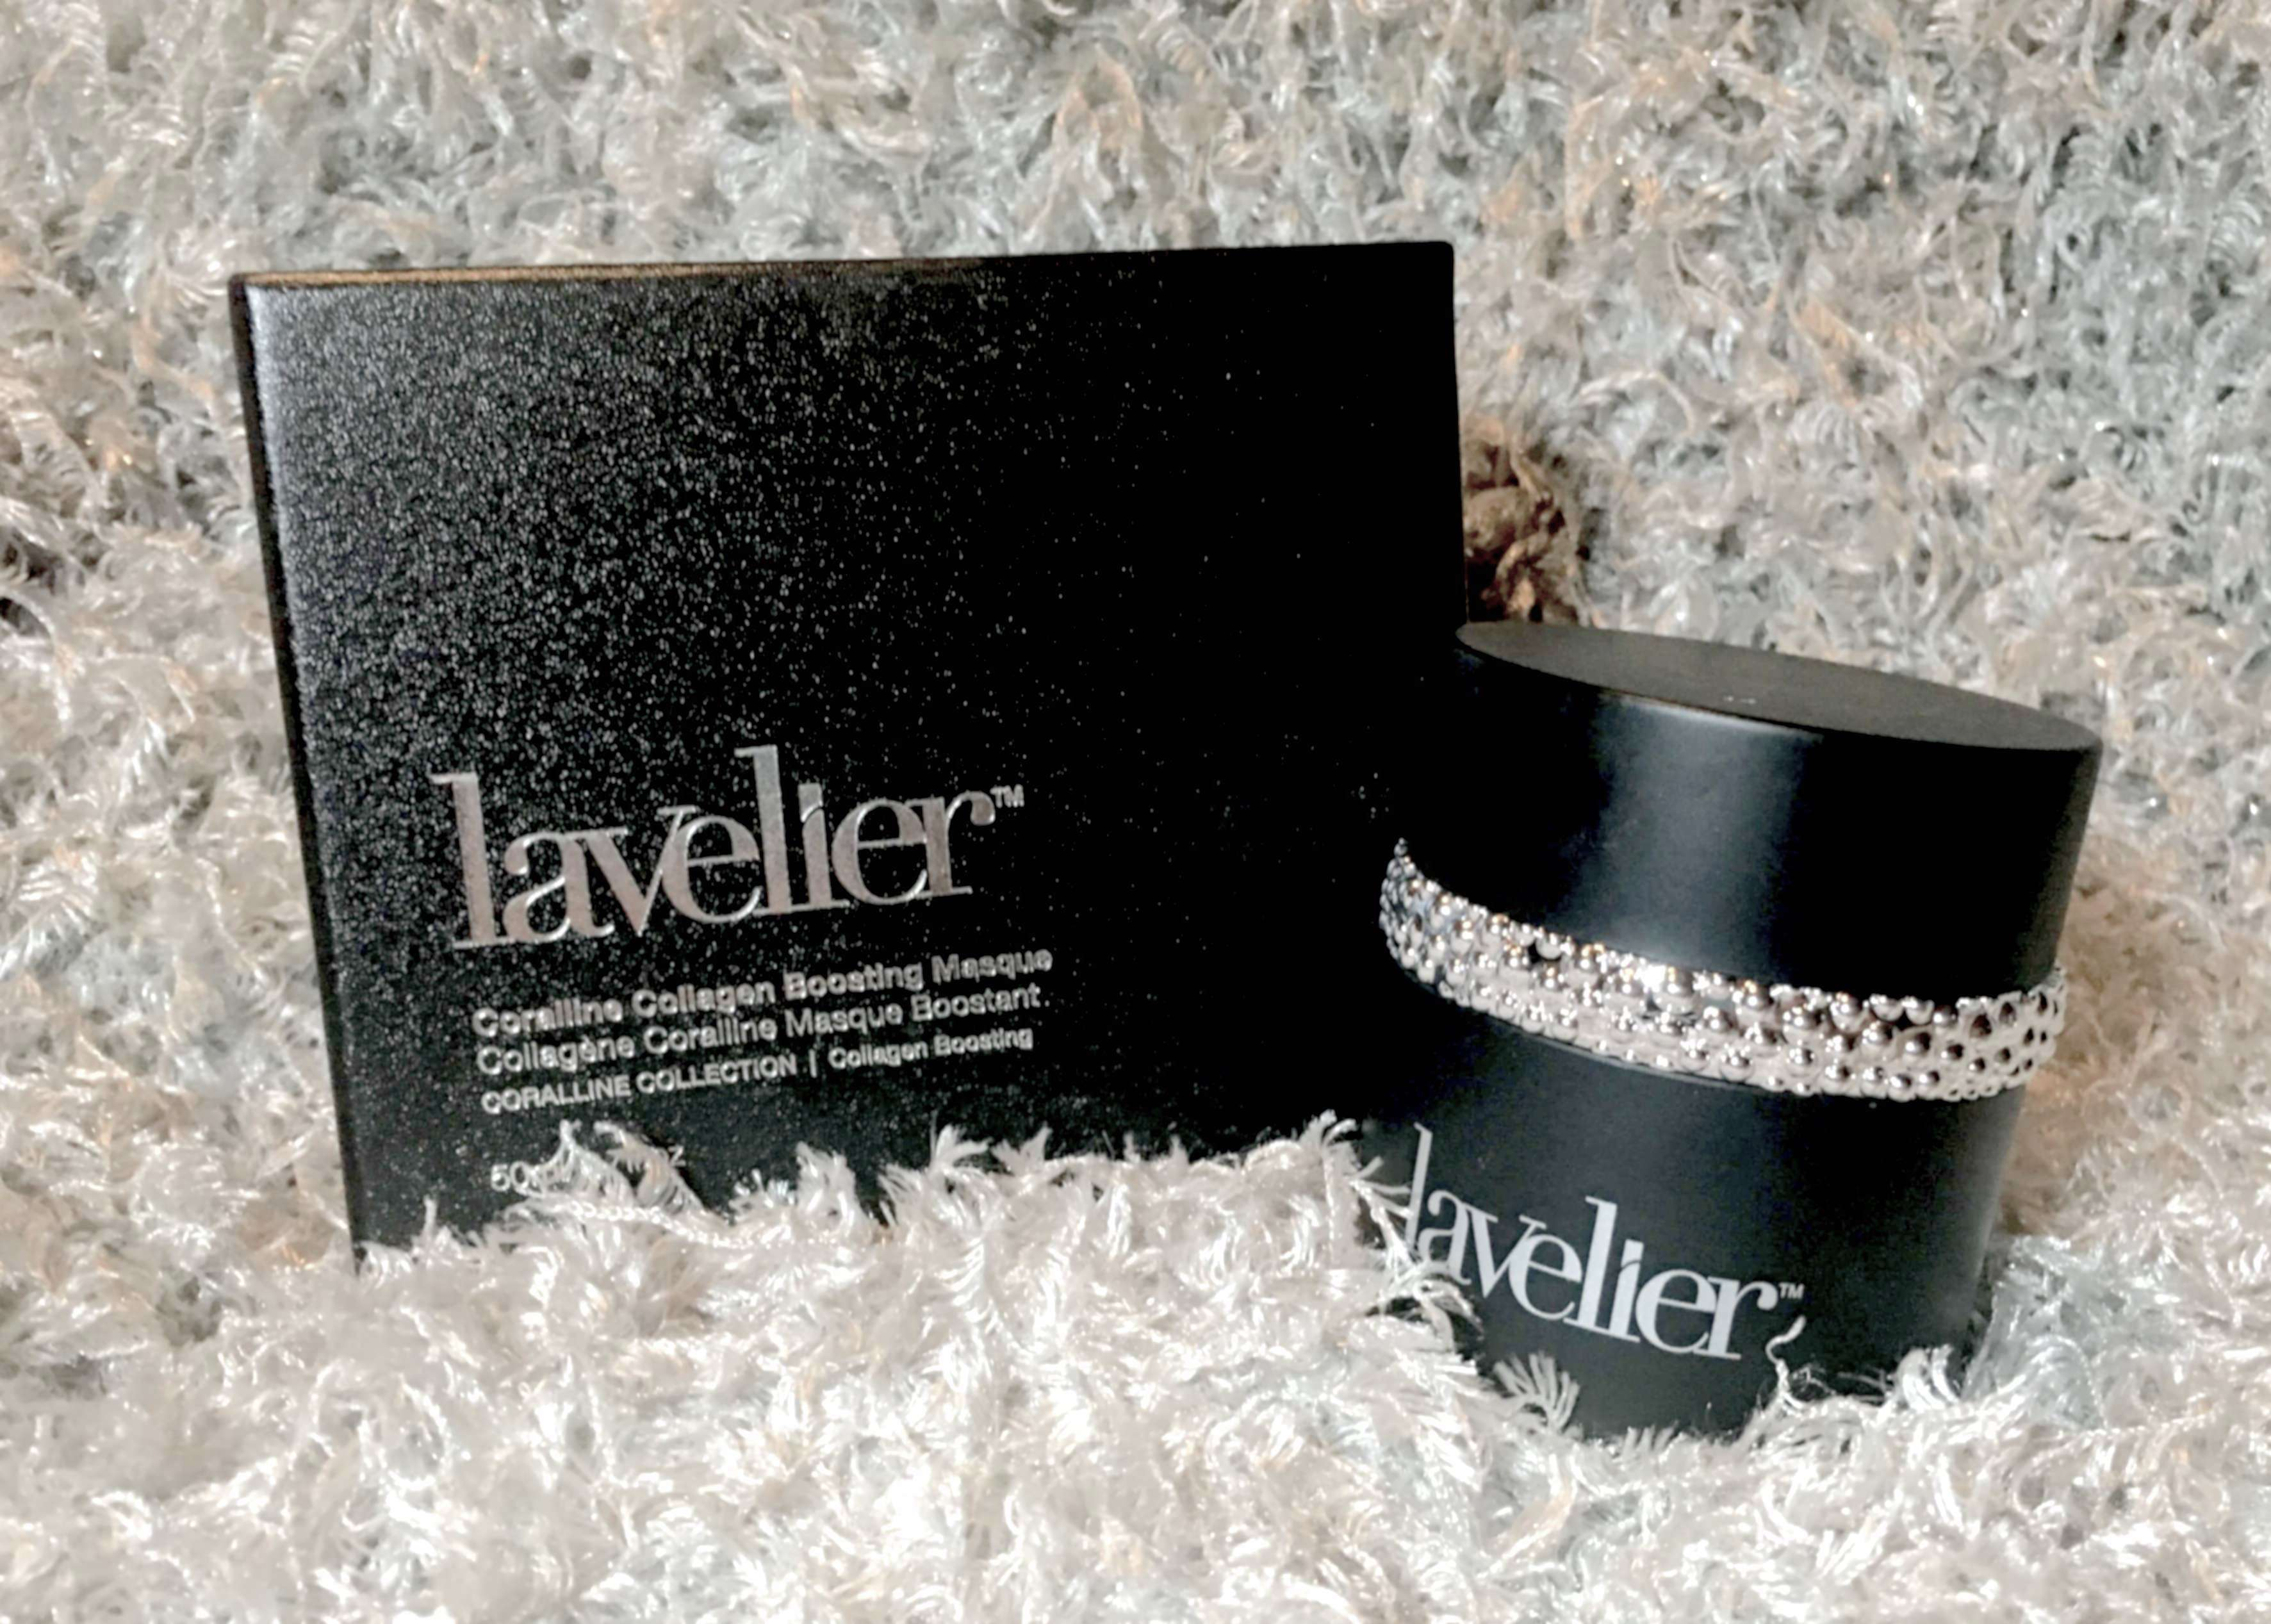 Lavelier Coralline Collagen Boosting Masque review